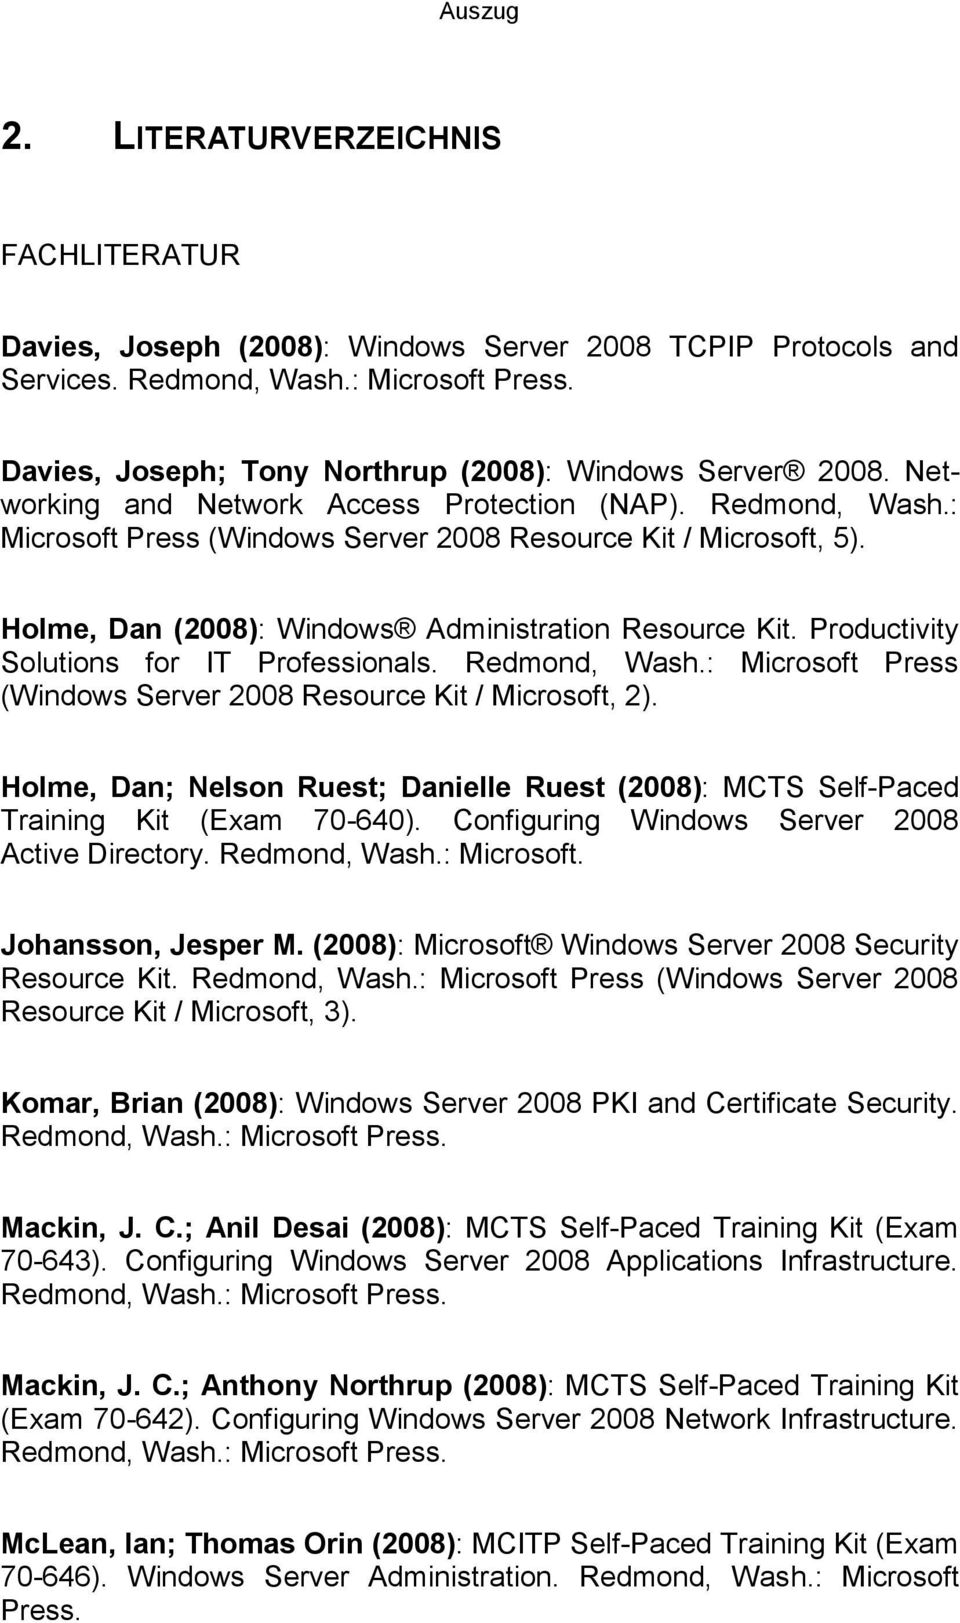 Holme, Dan (2008): Windows Administration Resource Kit. Productivity Solutions for IT Professionals. Redmond, Wash.: Microsoft Press (Windows Server 2008 Resource Kit / Microsoft, 2).